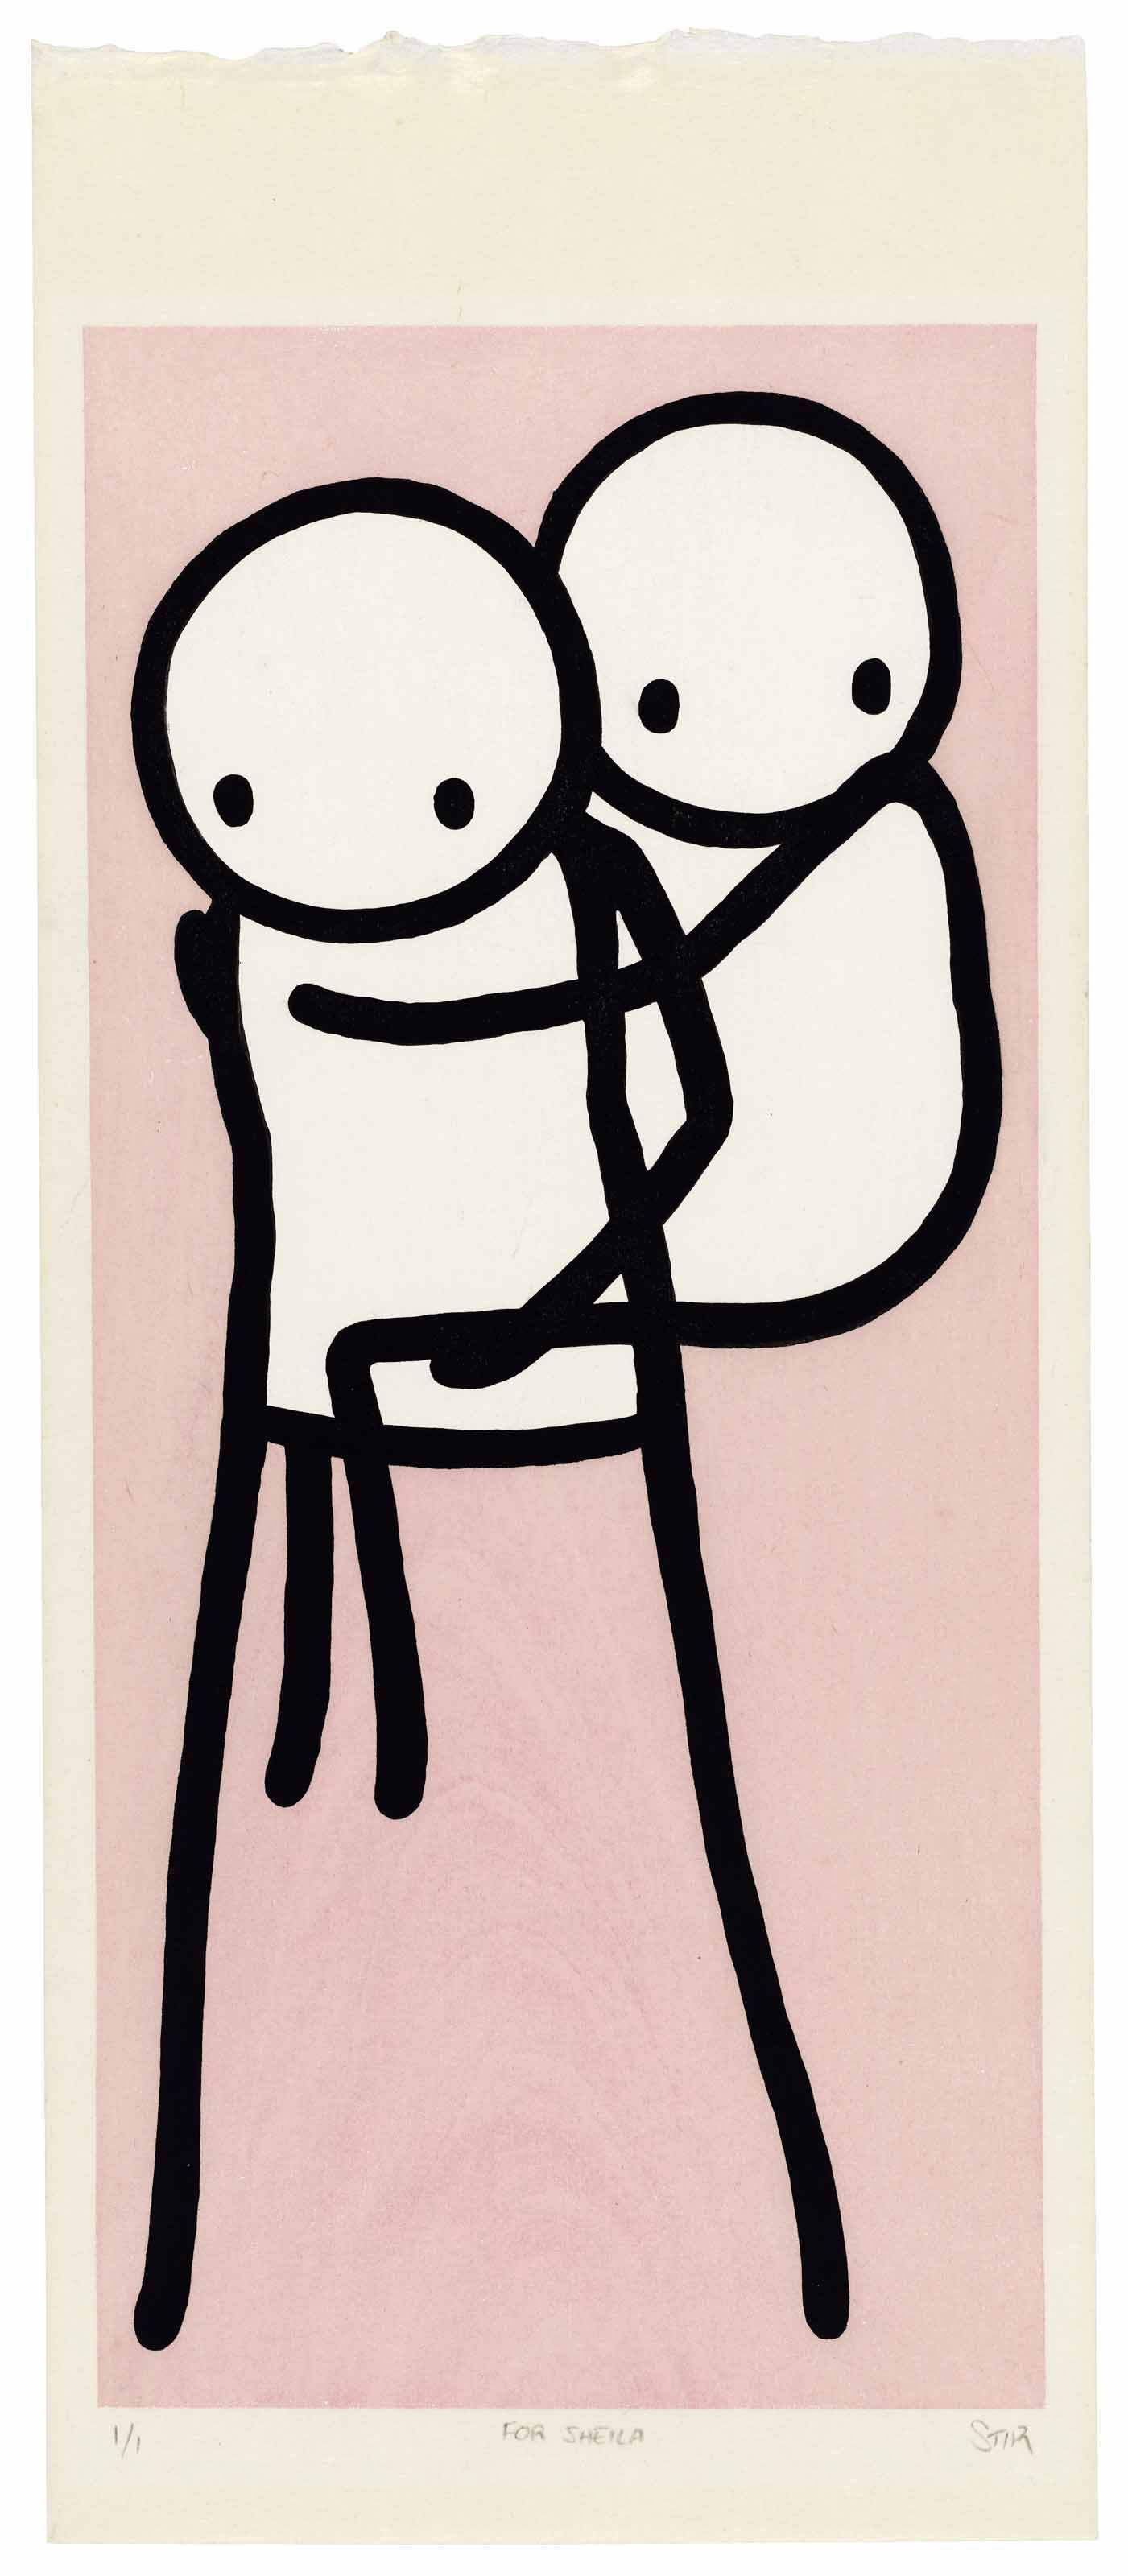 Stik (b. 1979), Onbu (Piggyback). Block 395 x 180 mm, Sheet 477 x 200 mm. Sold for £15,000 on 28 March 2018 at Christie's in London